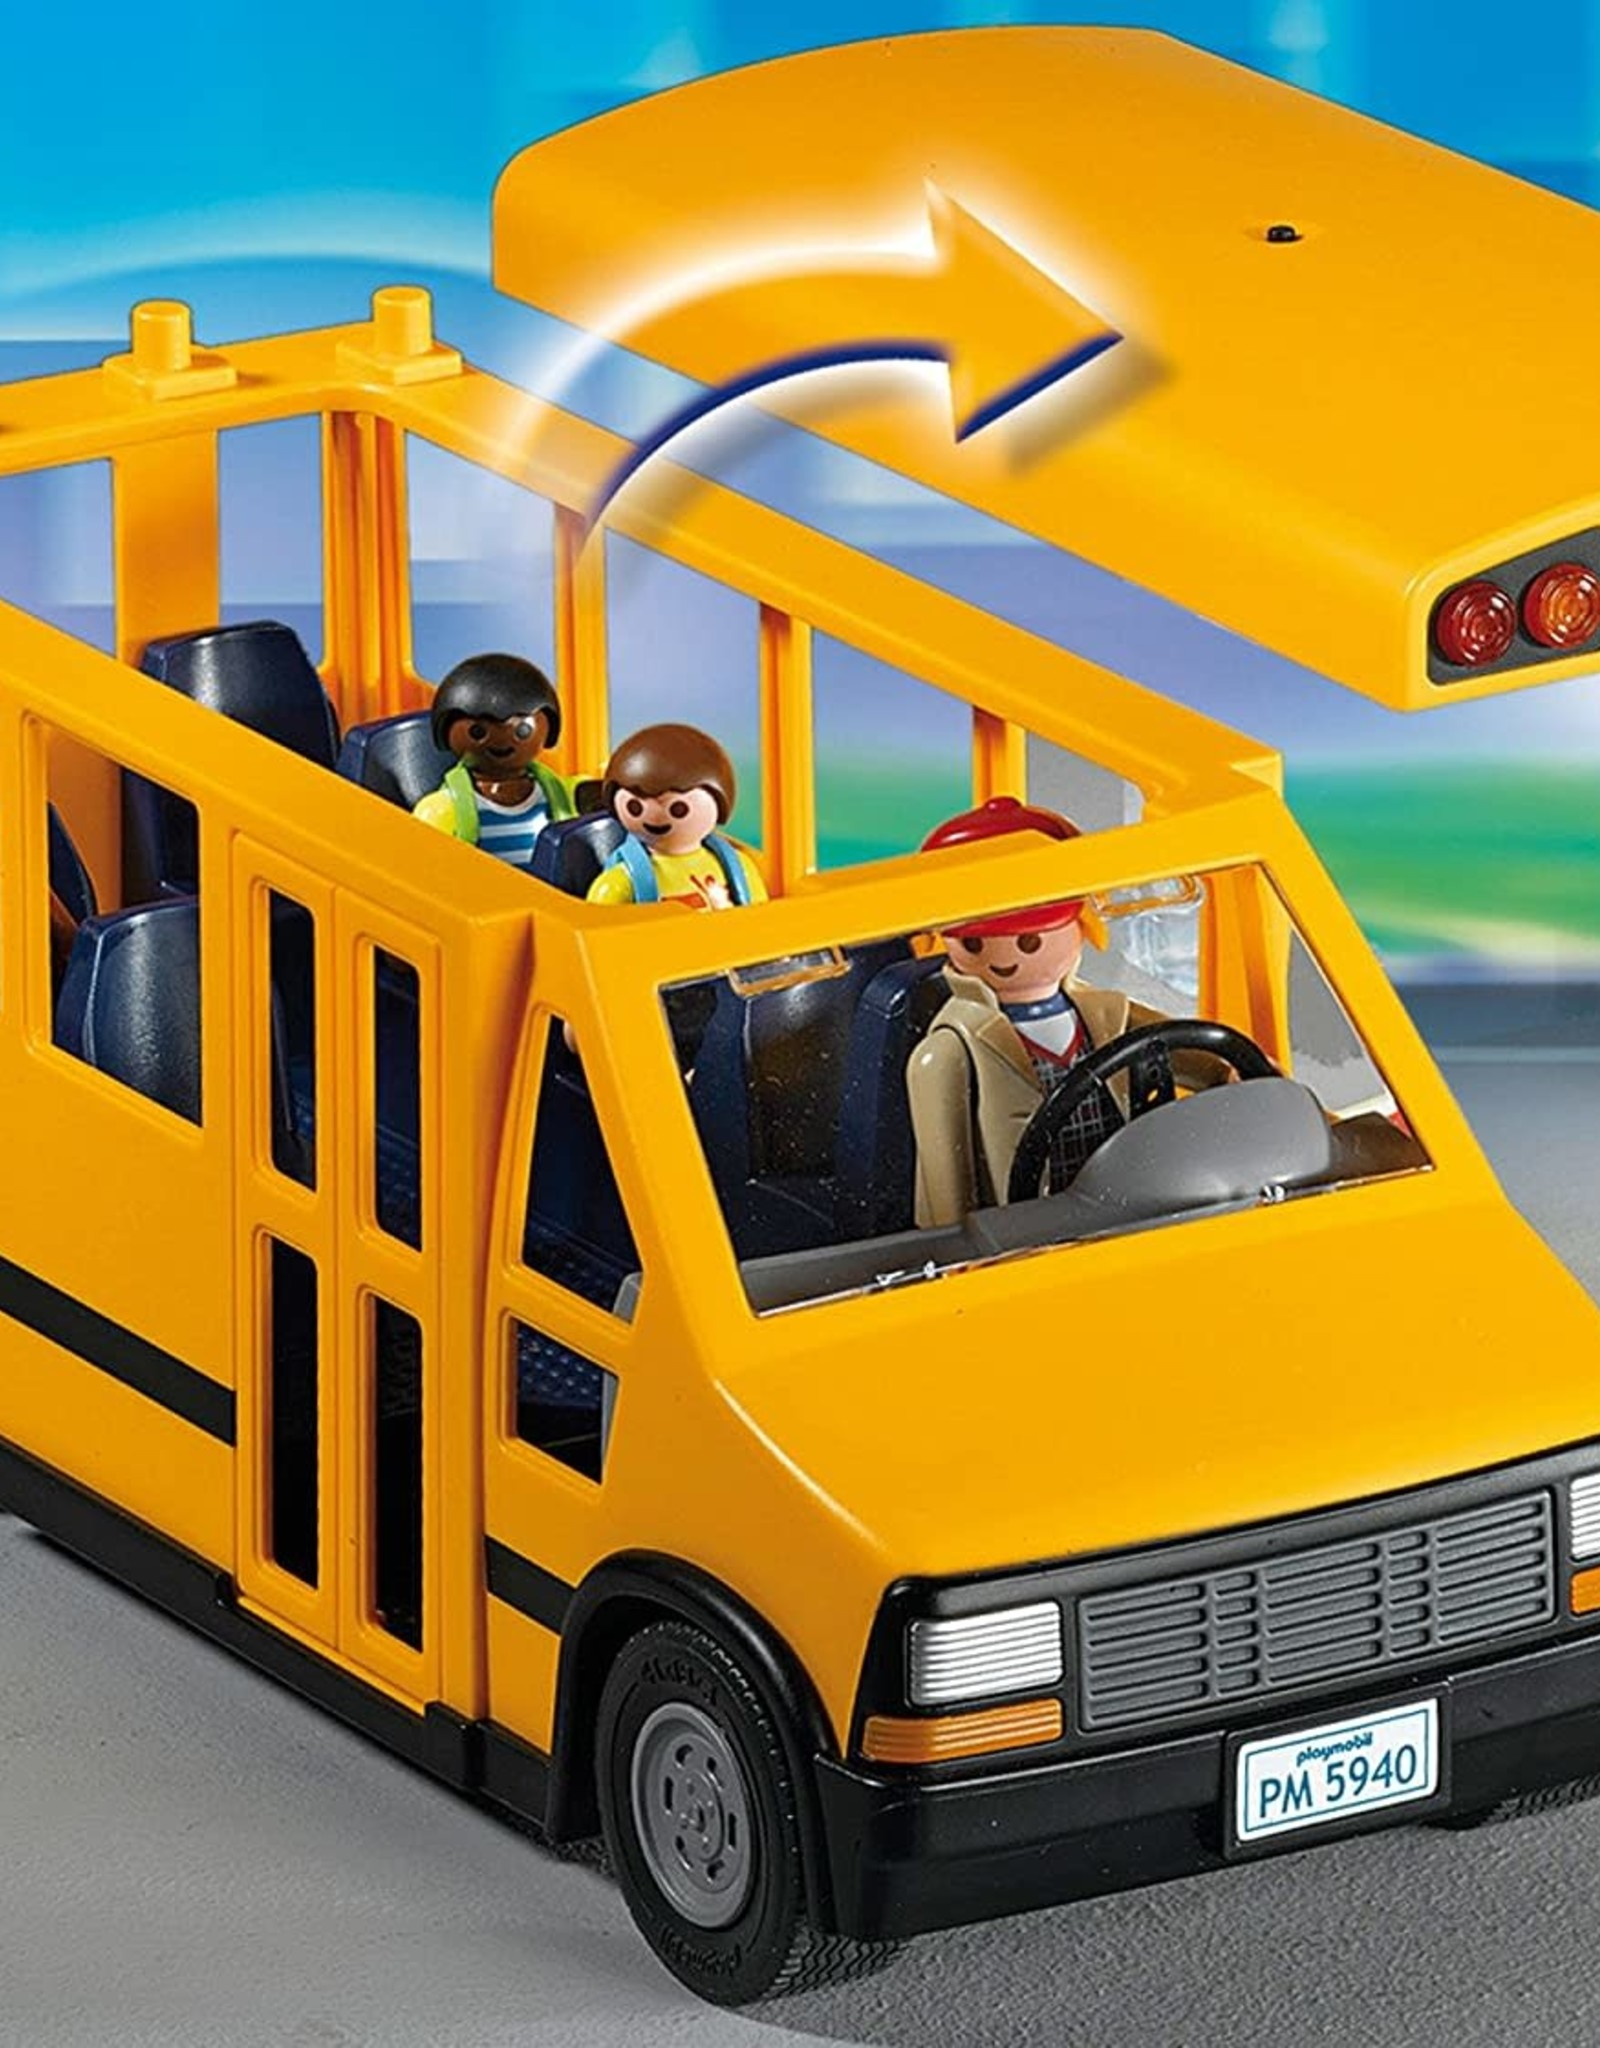 Playmobil PM School Bus